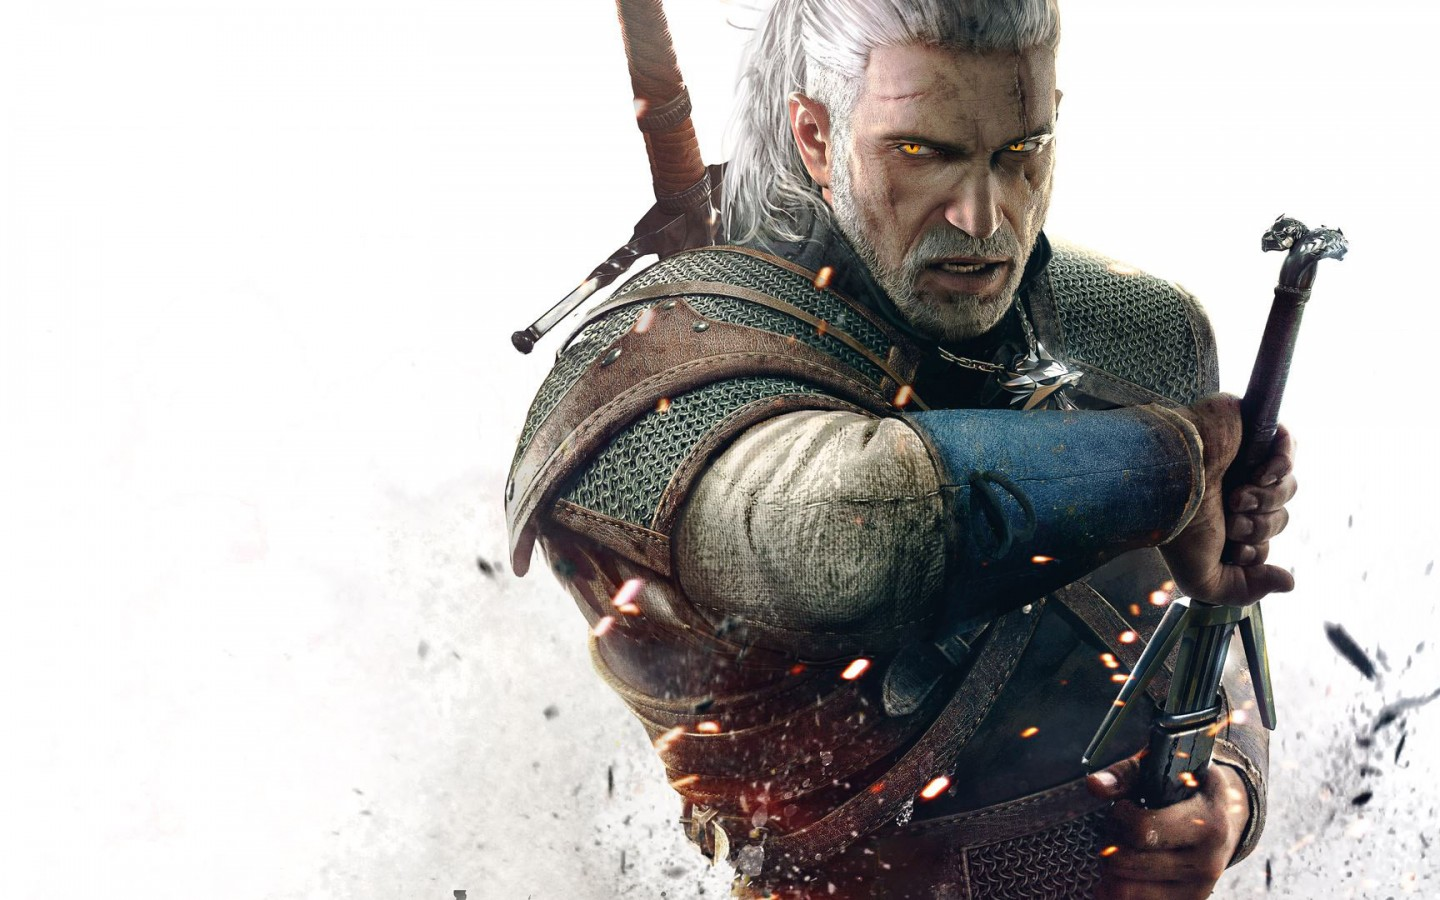 The-Witcher-3-Wild-Hunt-2015-Game-Wallpaper-1440x900 1